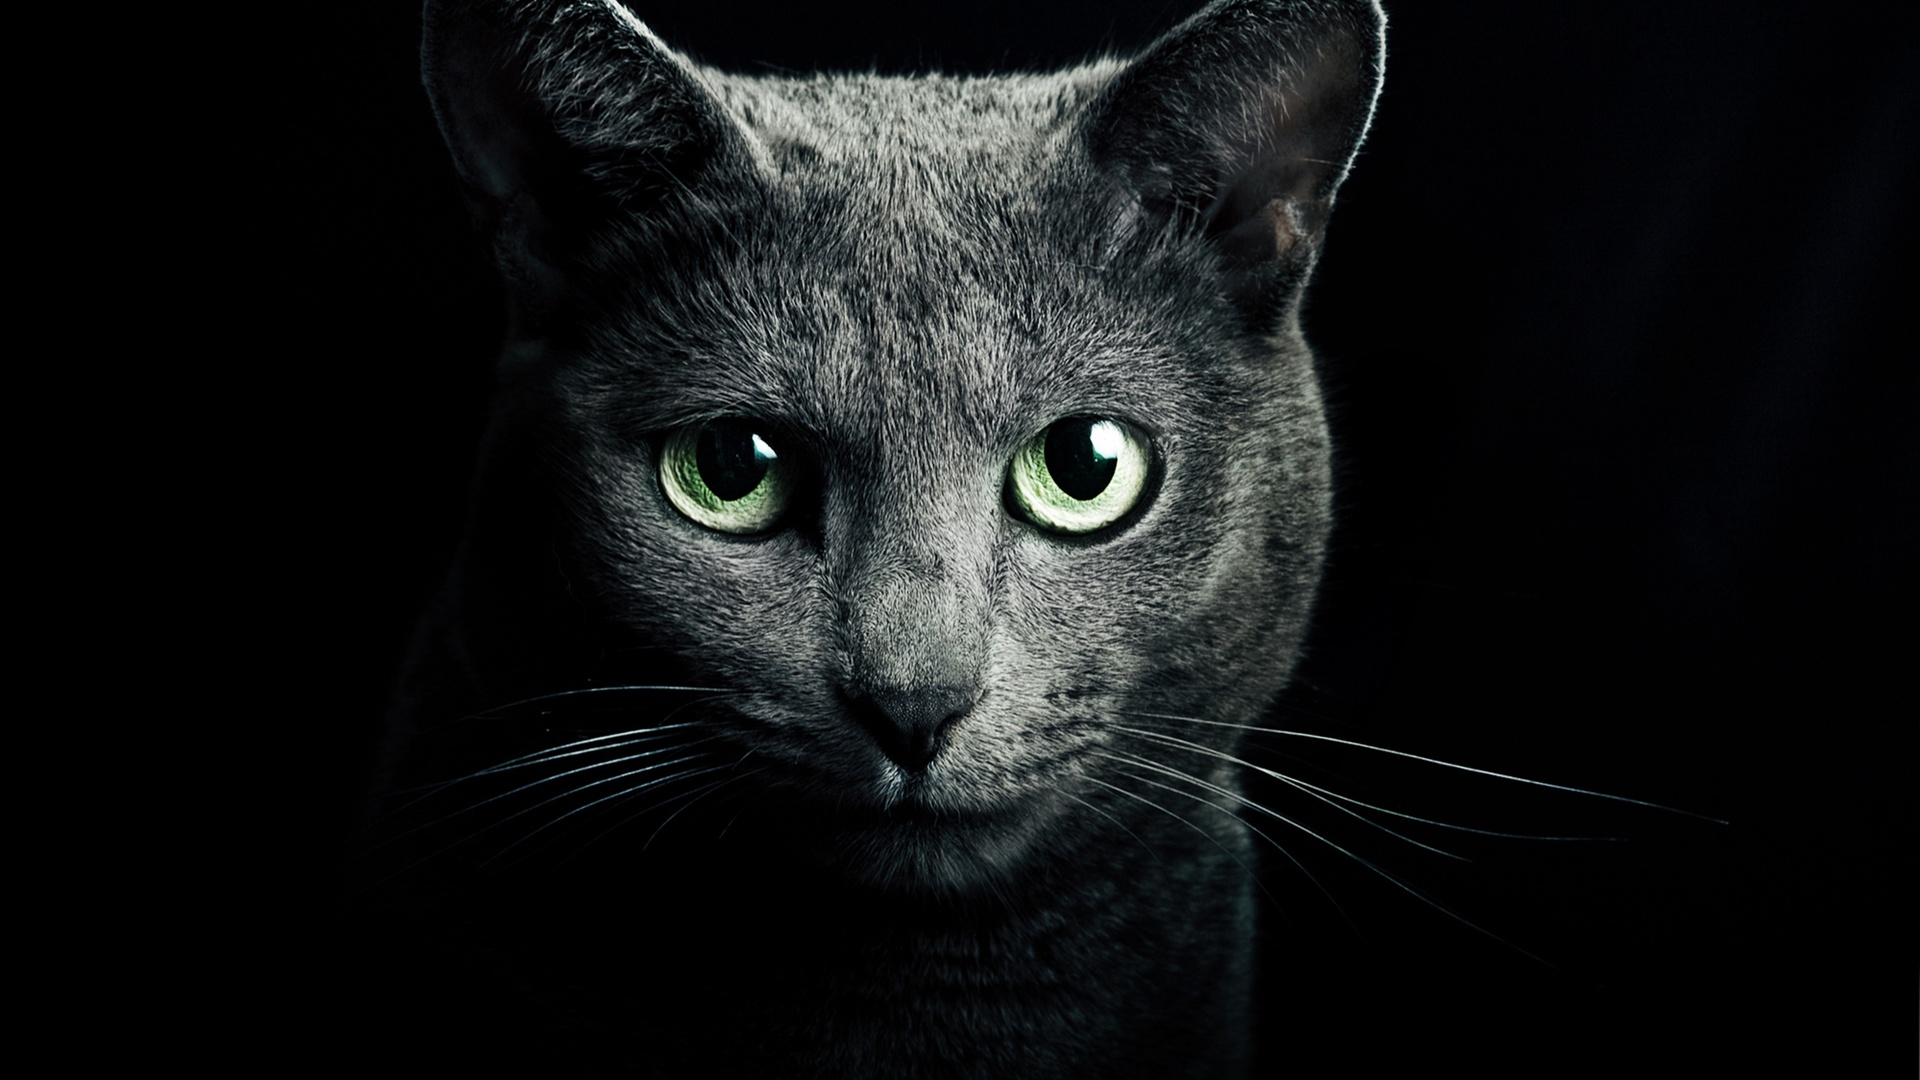 Black Cat Eyes Wallpaper: Wallpaper Black Cat, Green Eyes, Black Background